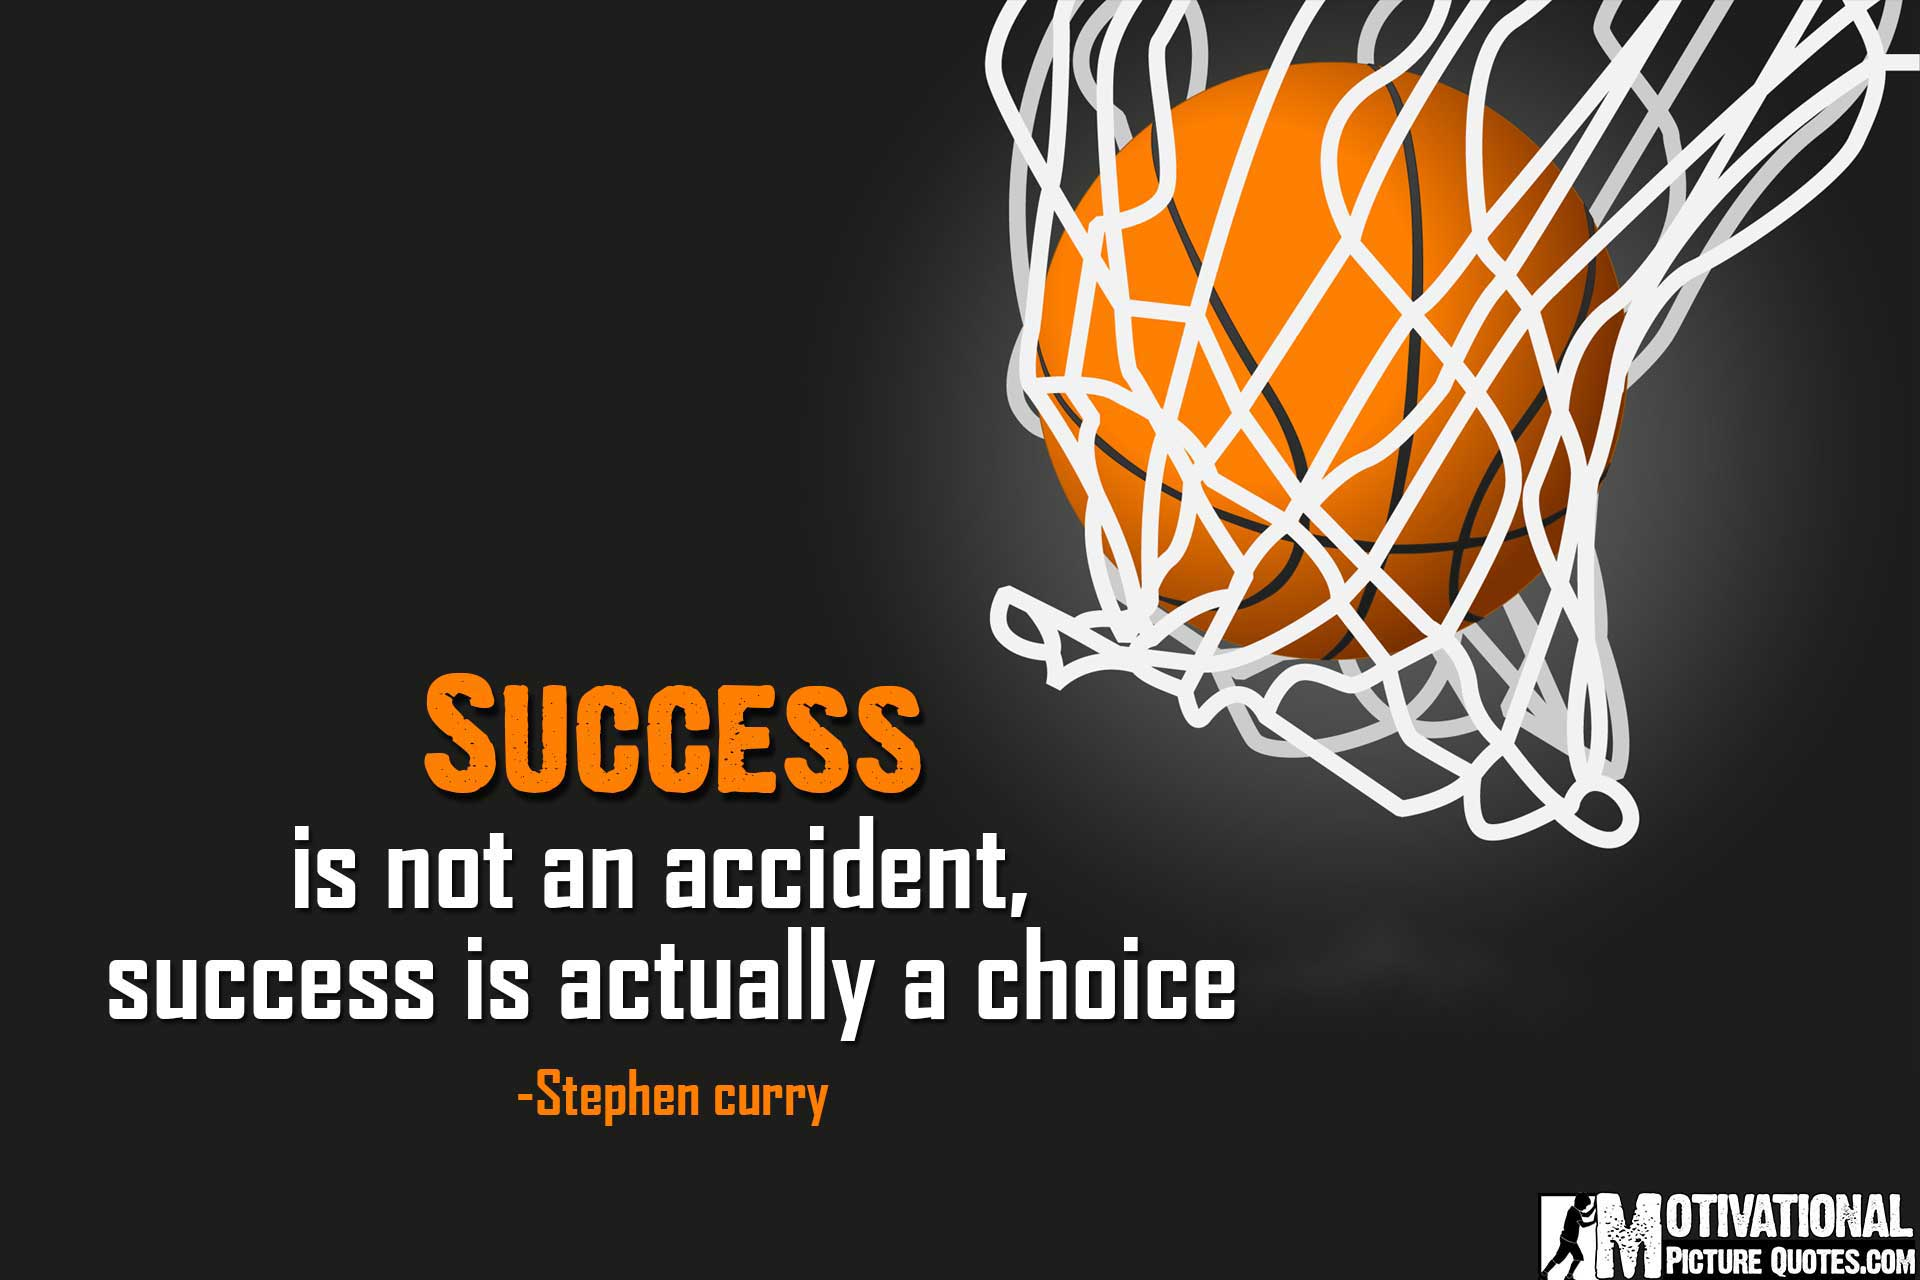 Download Inspirational Basketball Wallpapers Gallery